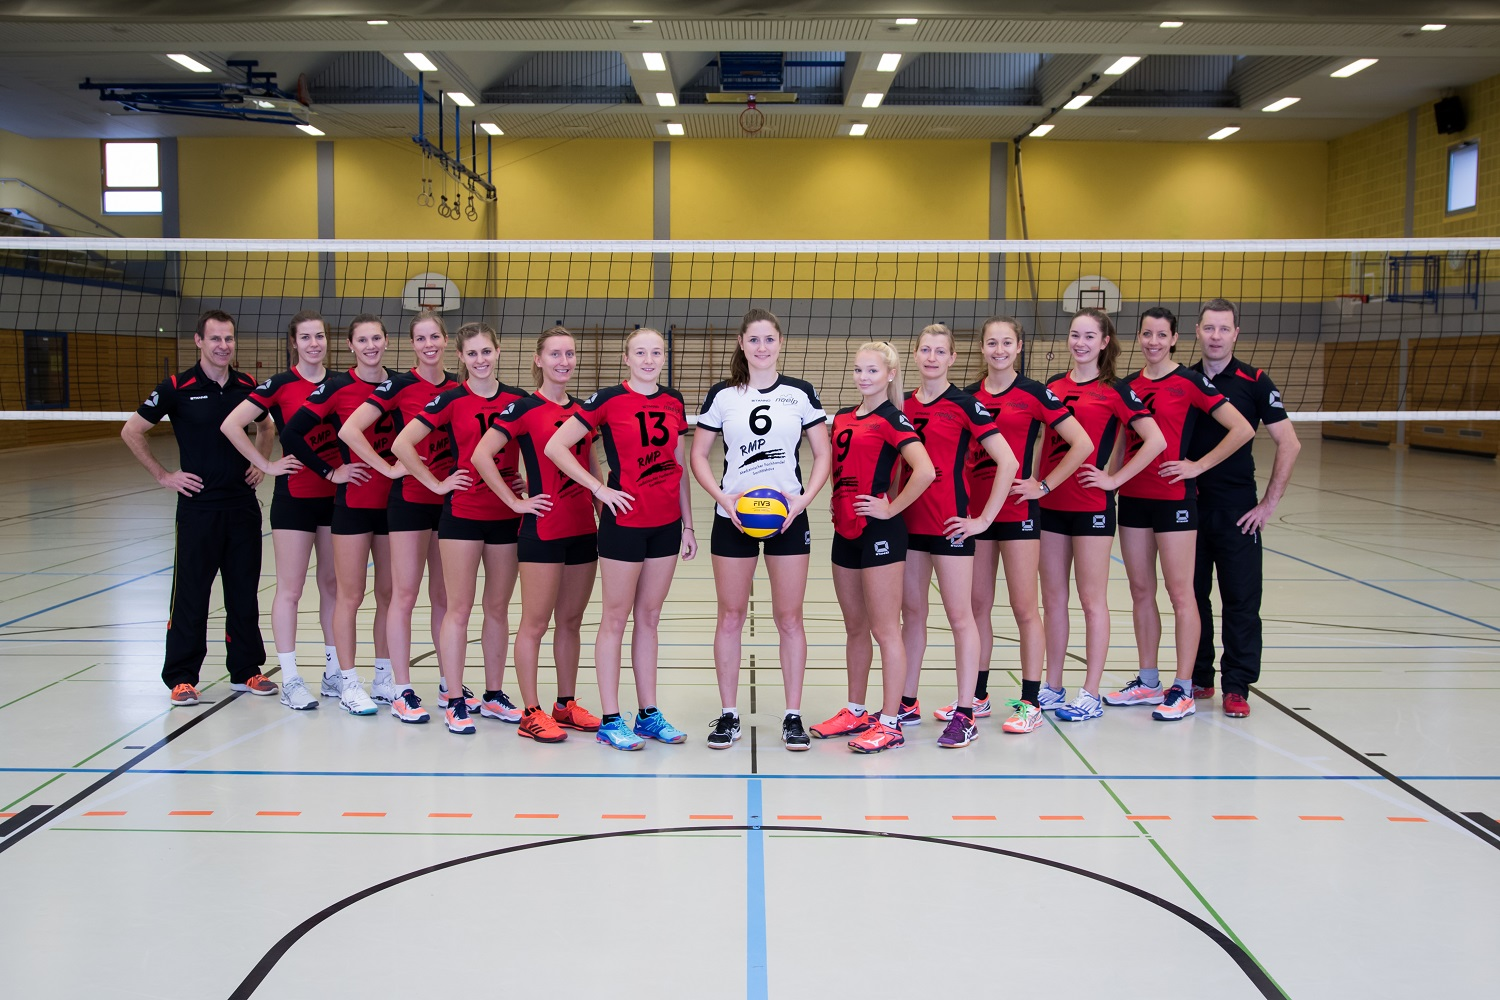 volleyball 2 liga damen